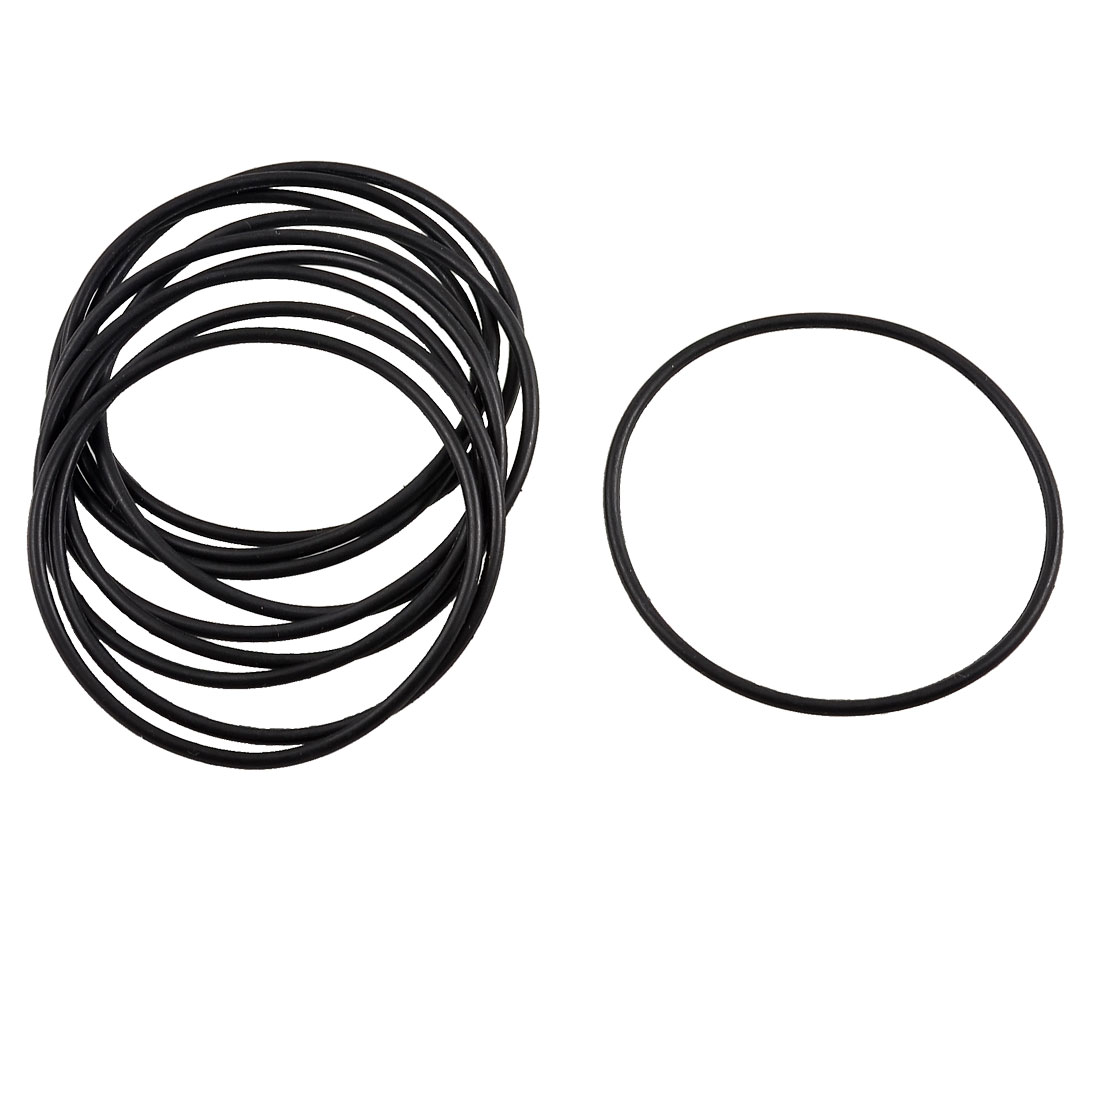 10 Pcs Black Rubber O Ring Oil Filter Seal Gaskets 45mm x 1.8mm